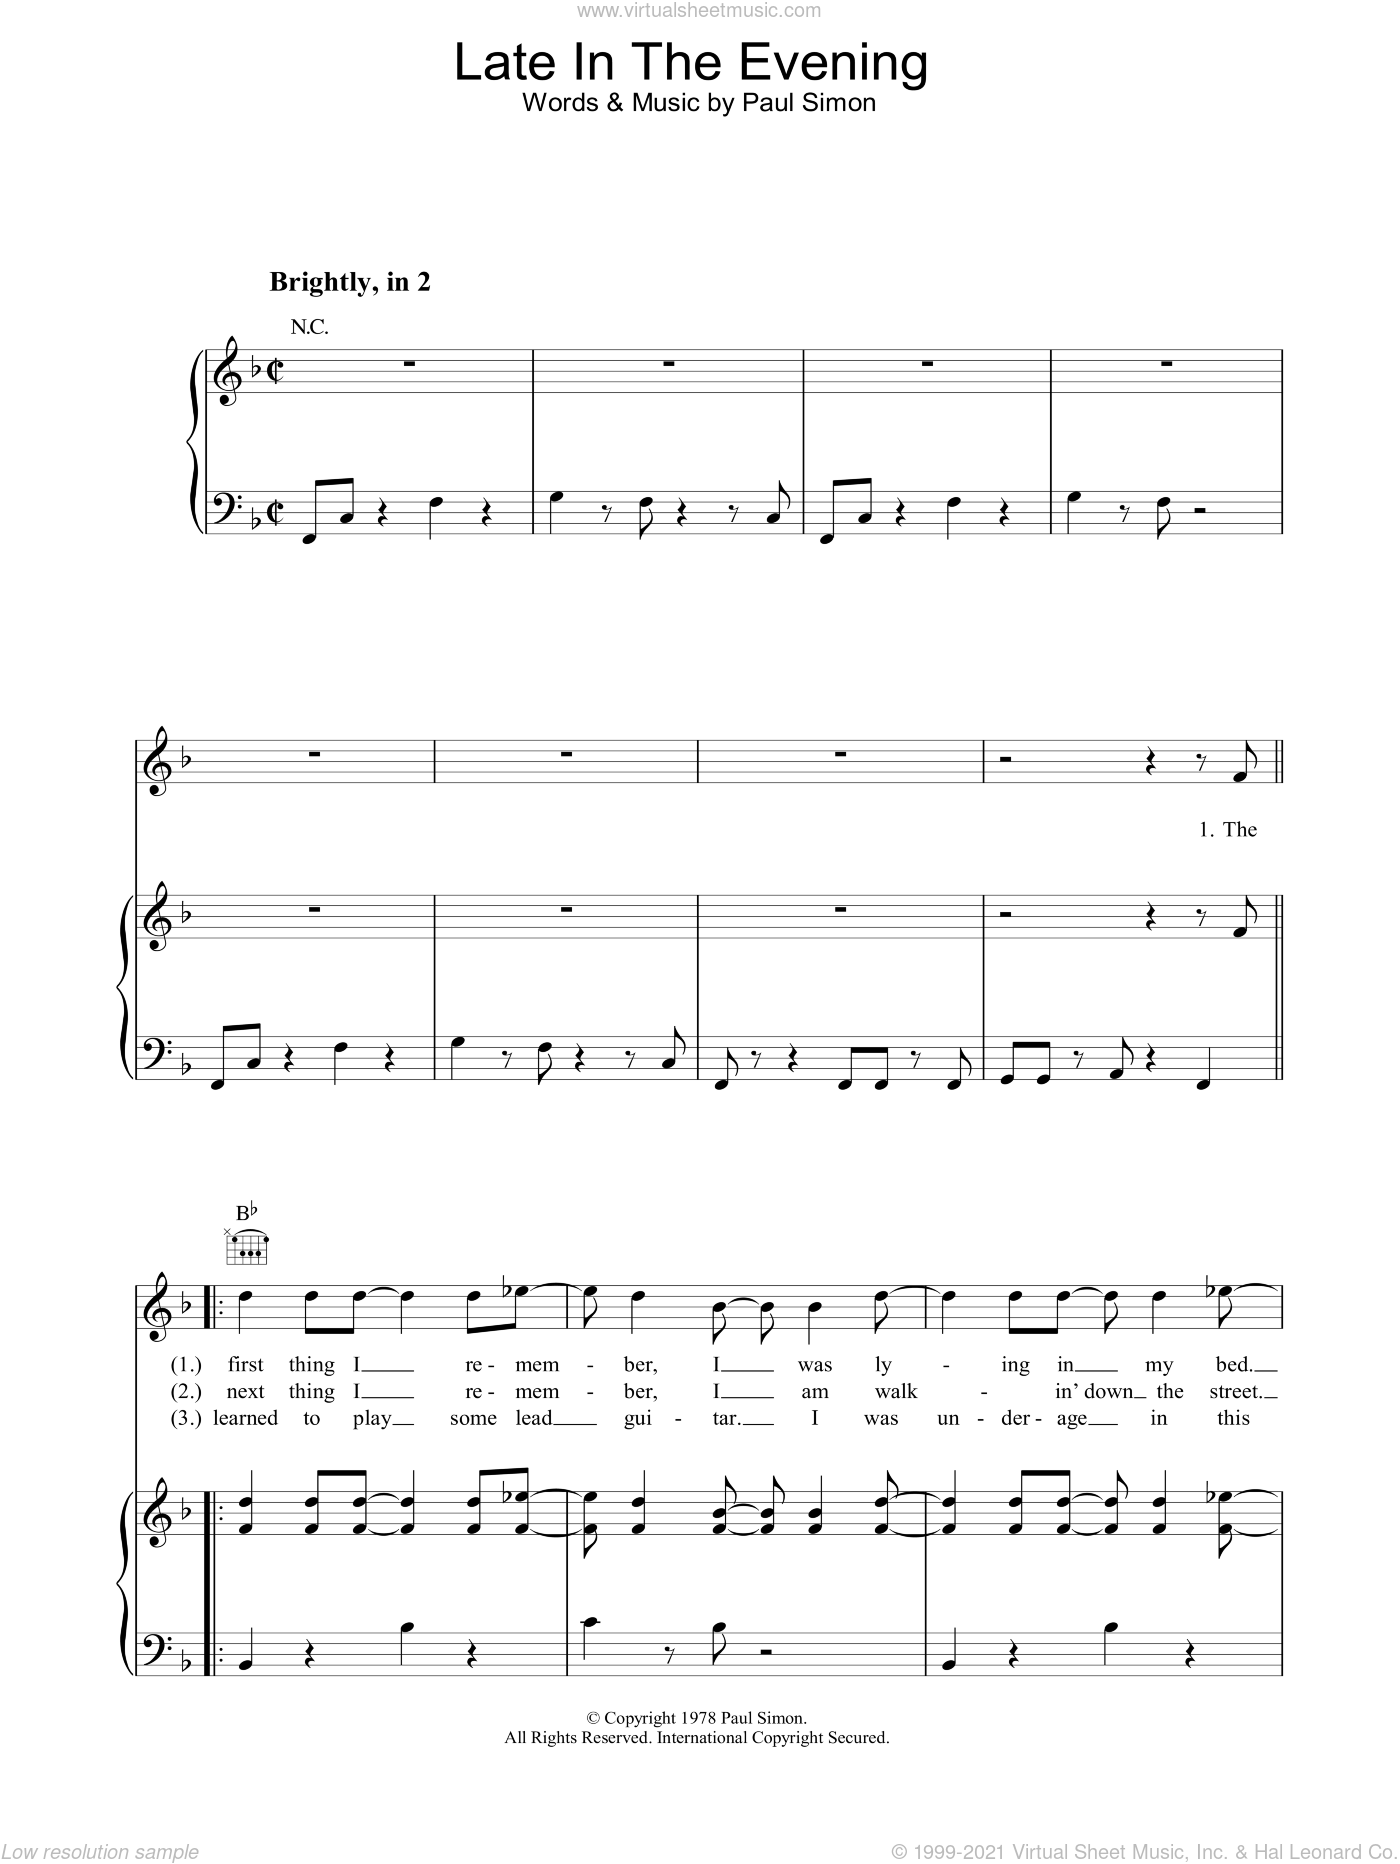 Late In The Evening sheet music for voice, piano or guitar by Paul Simon, intermediate skill level